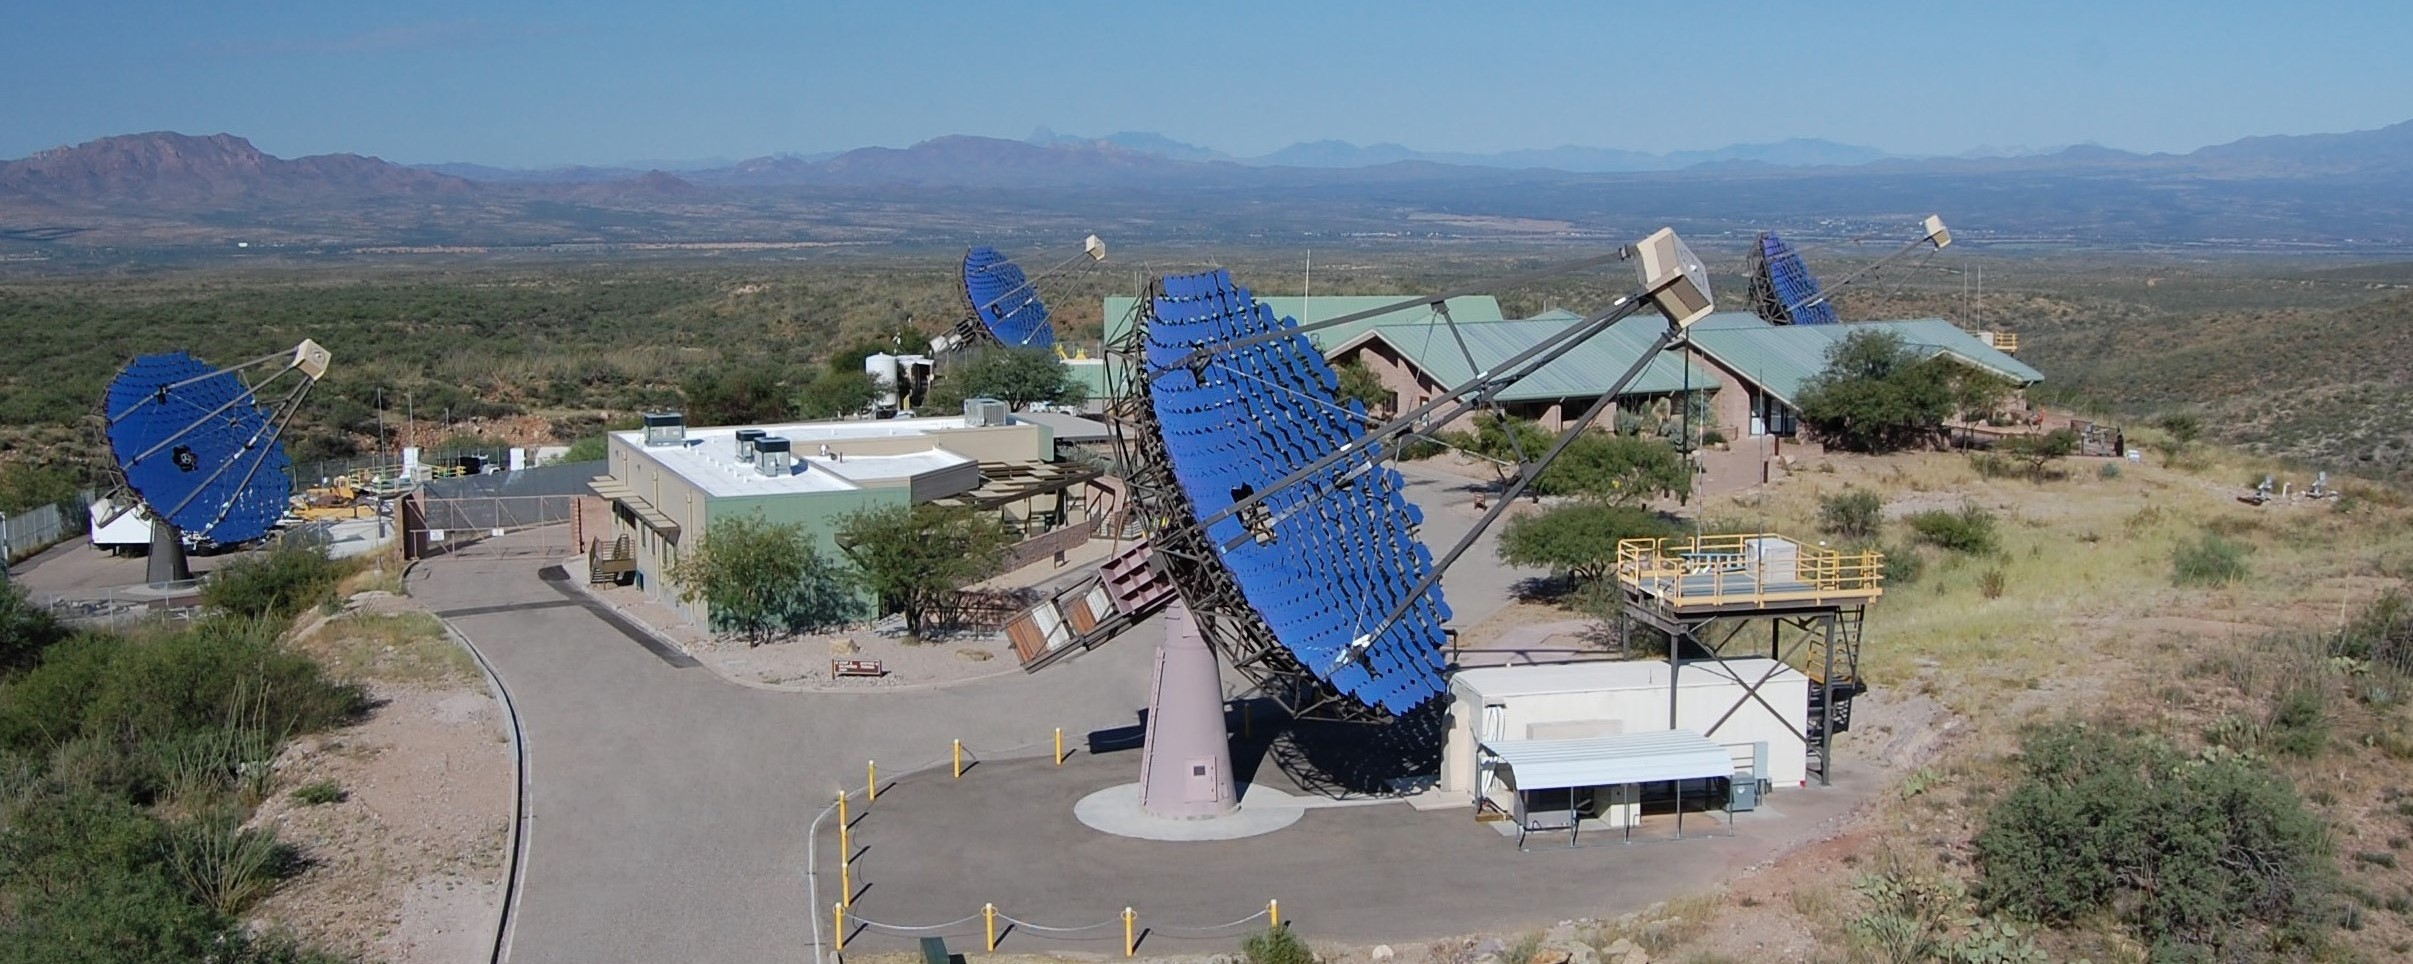 VERITAS array in Arizona